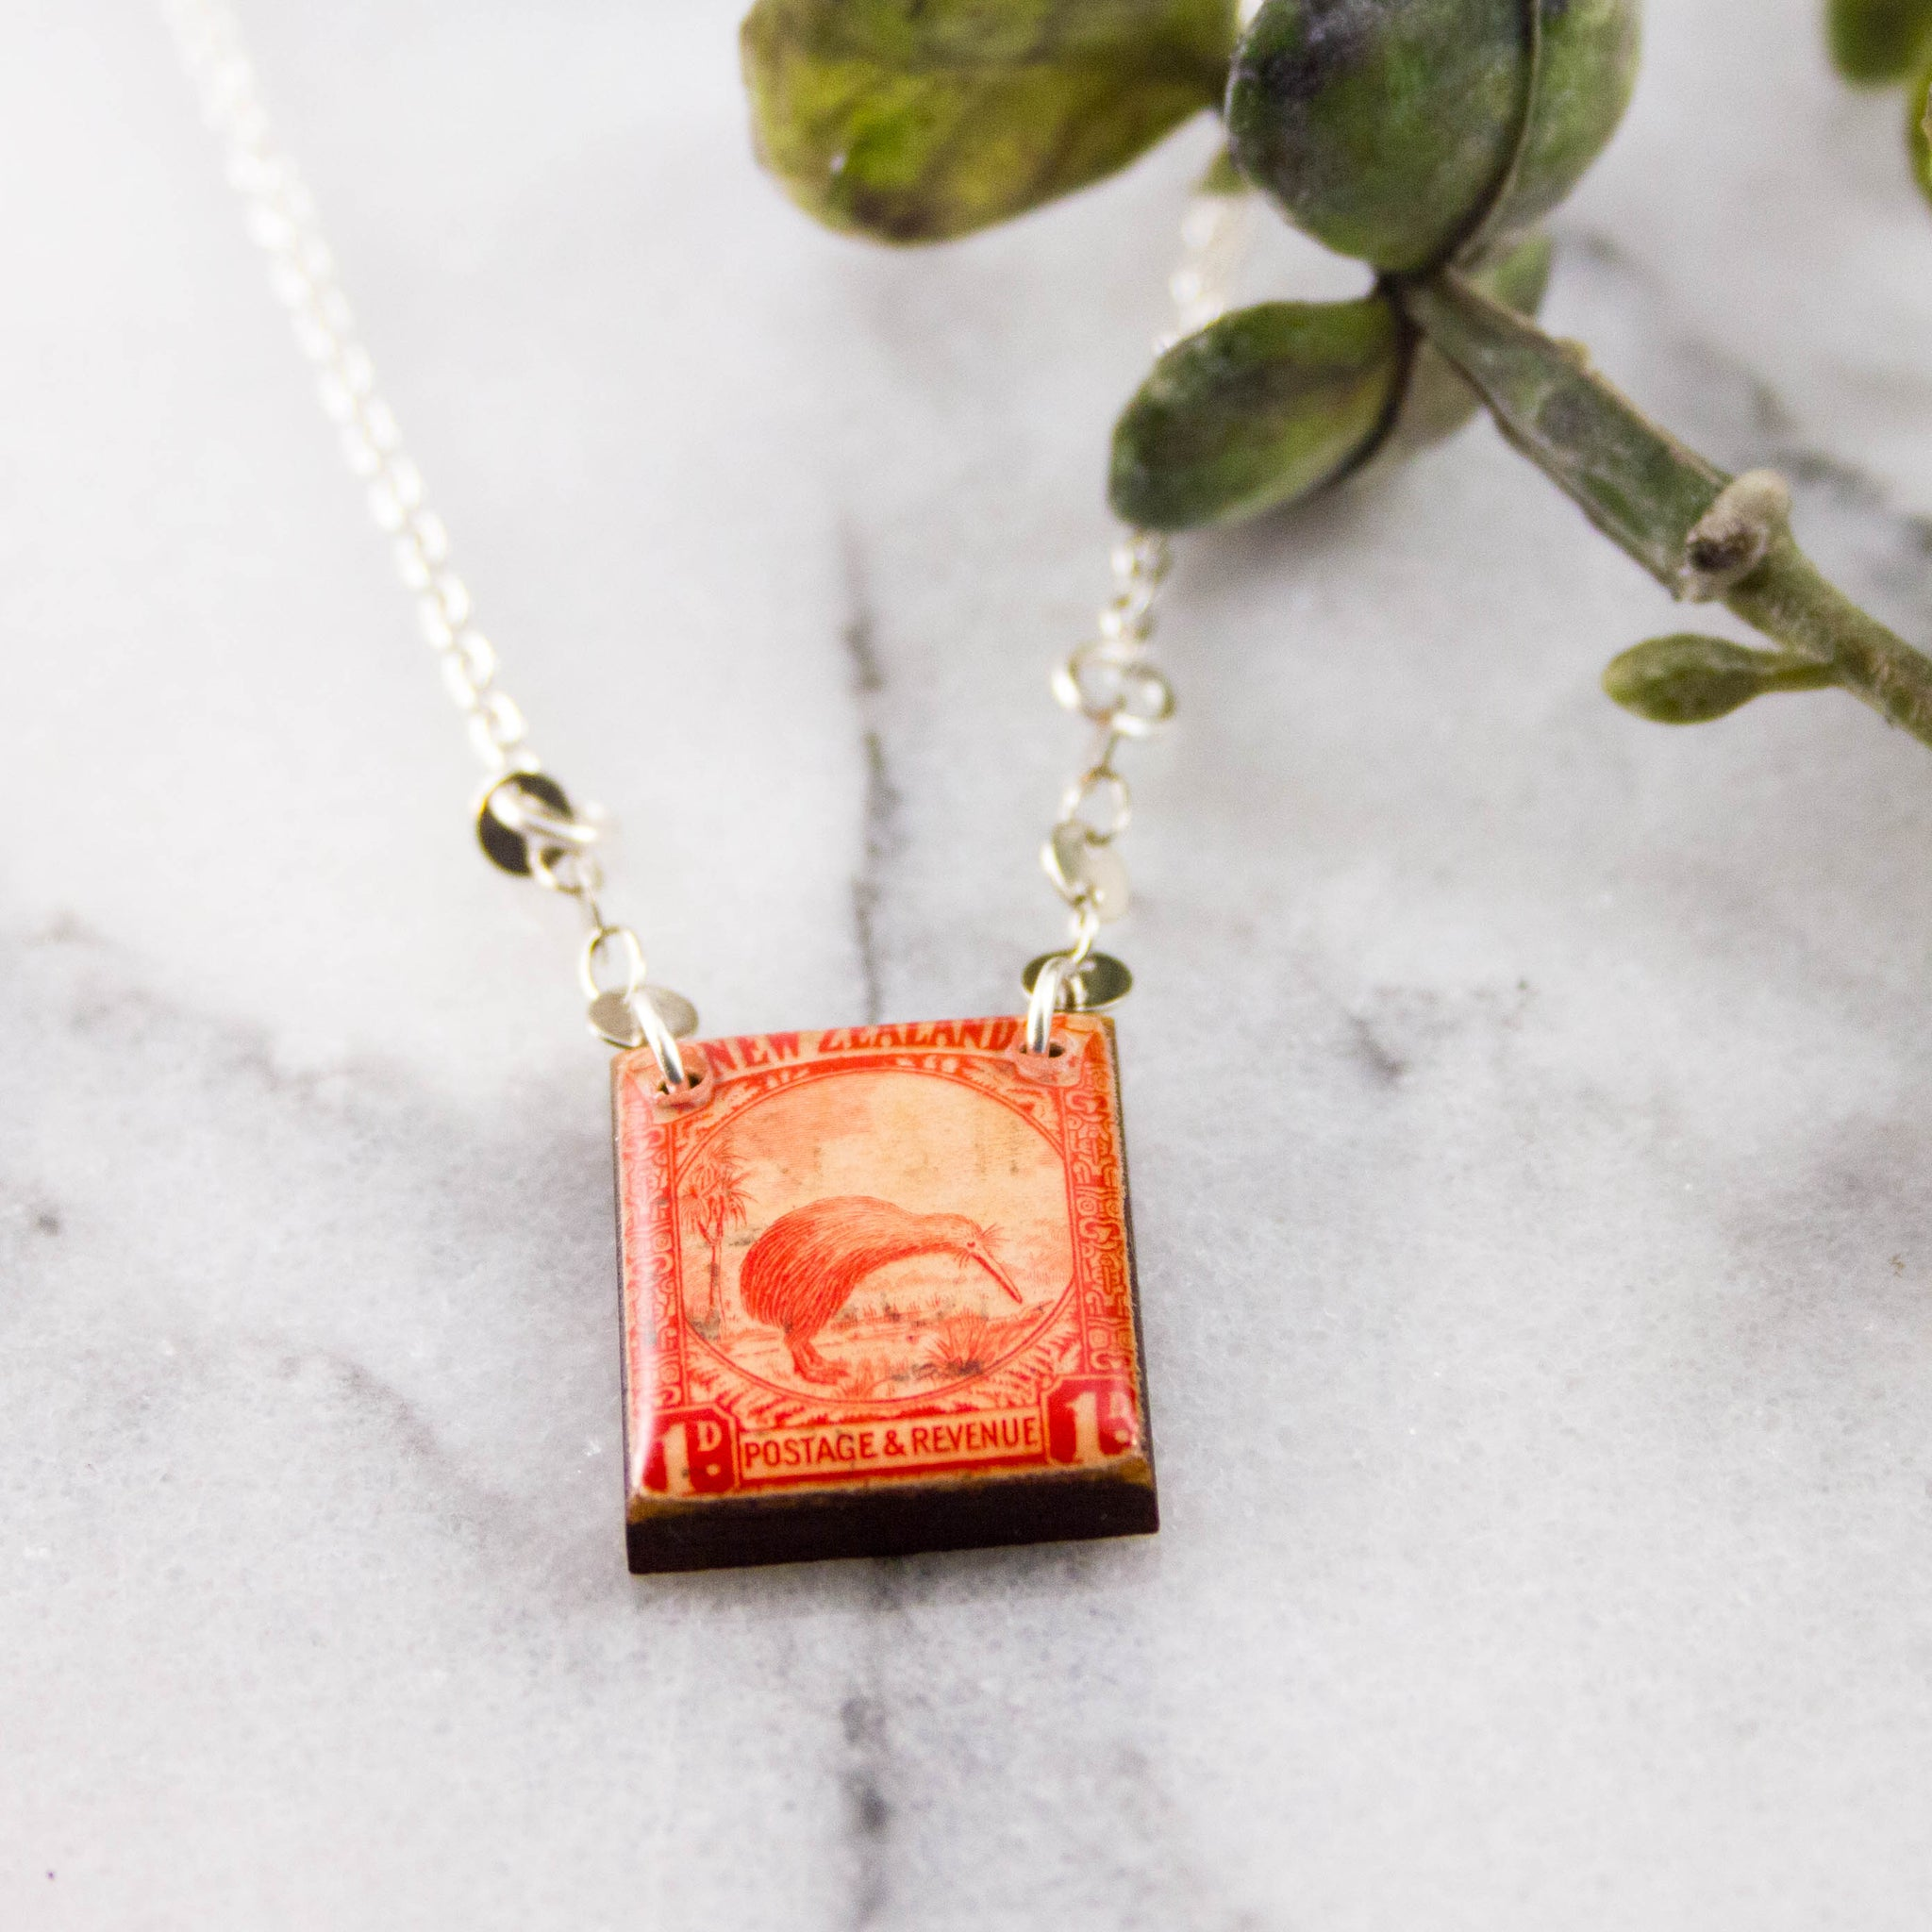 NEW ZEALAND- Antique Kiwi Bird Postage Stamp Necklace